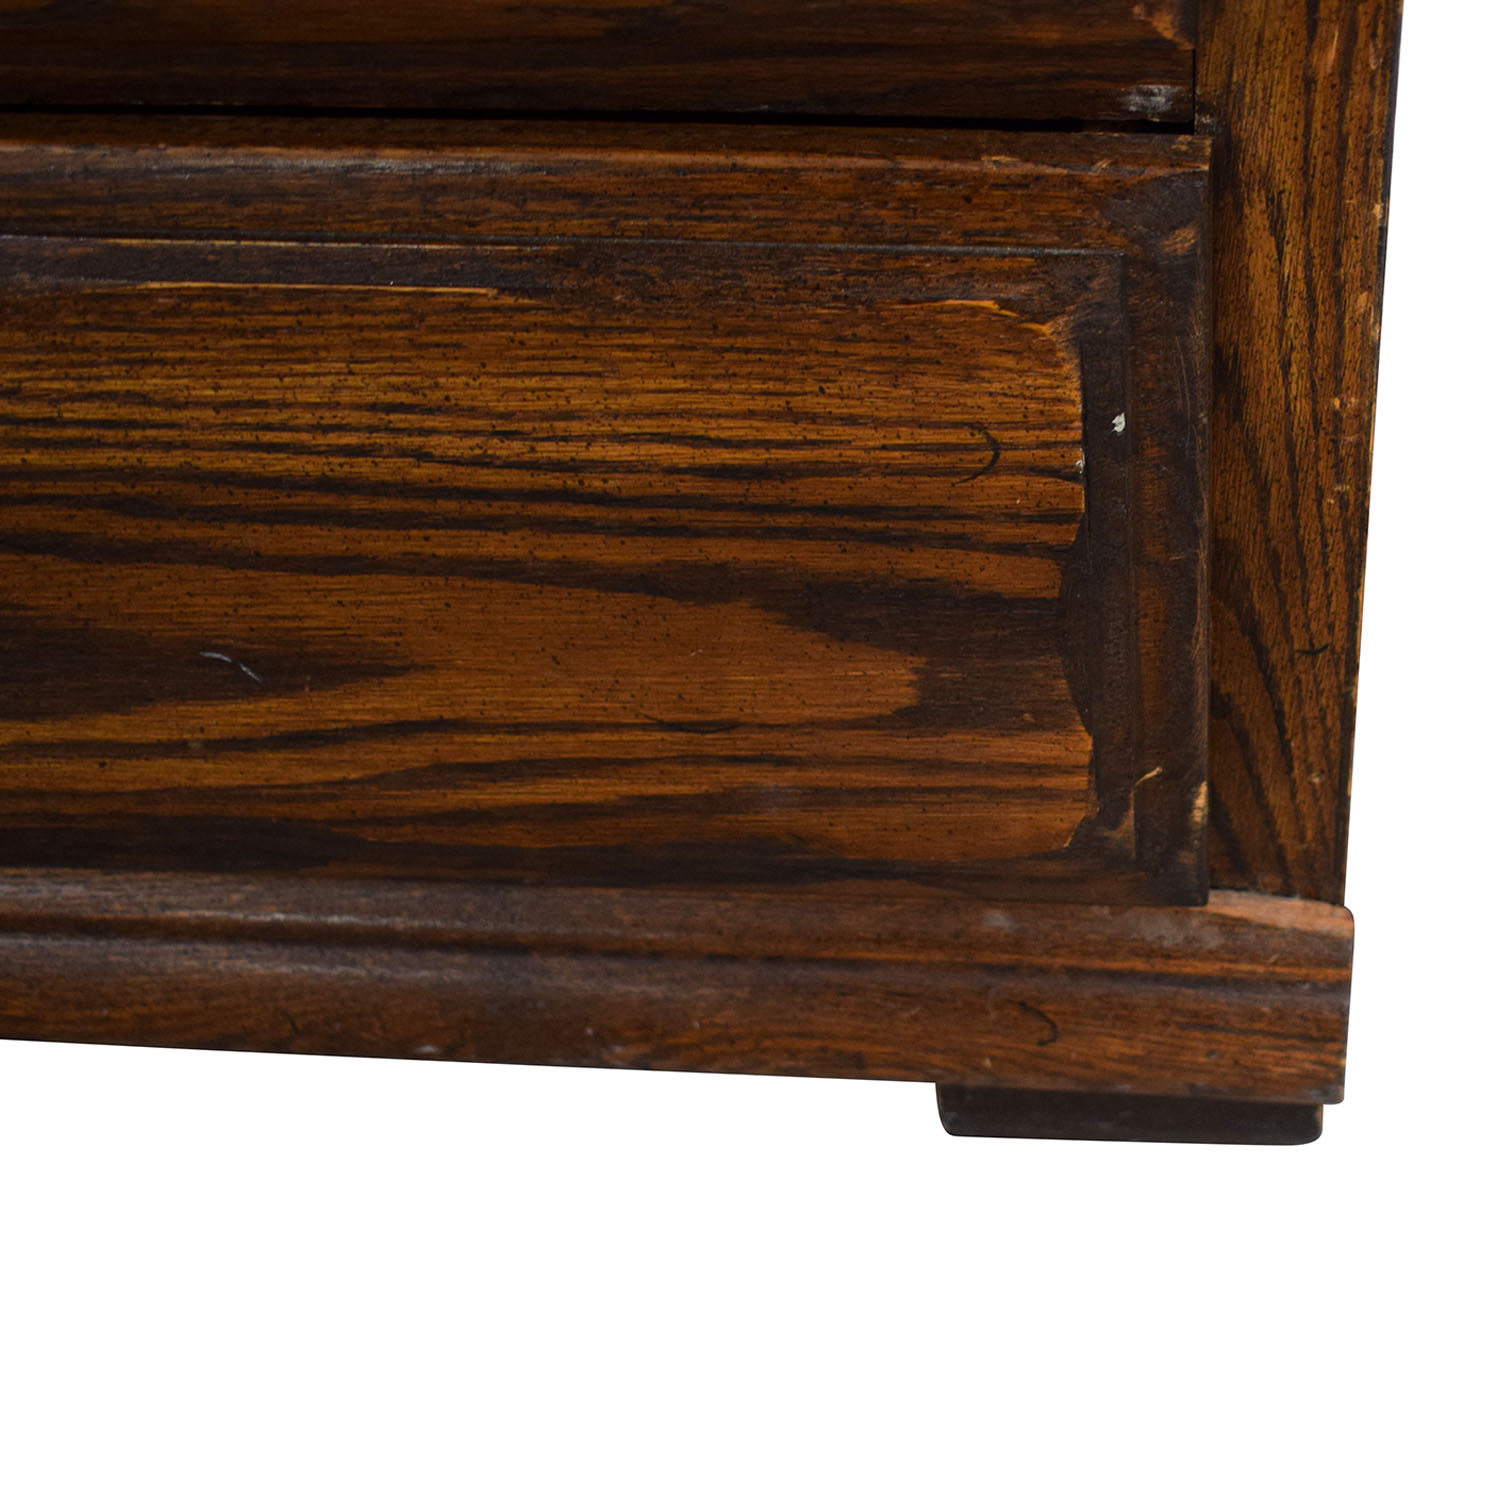 Wood Cabinet Hutch with Three Drawers price